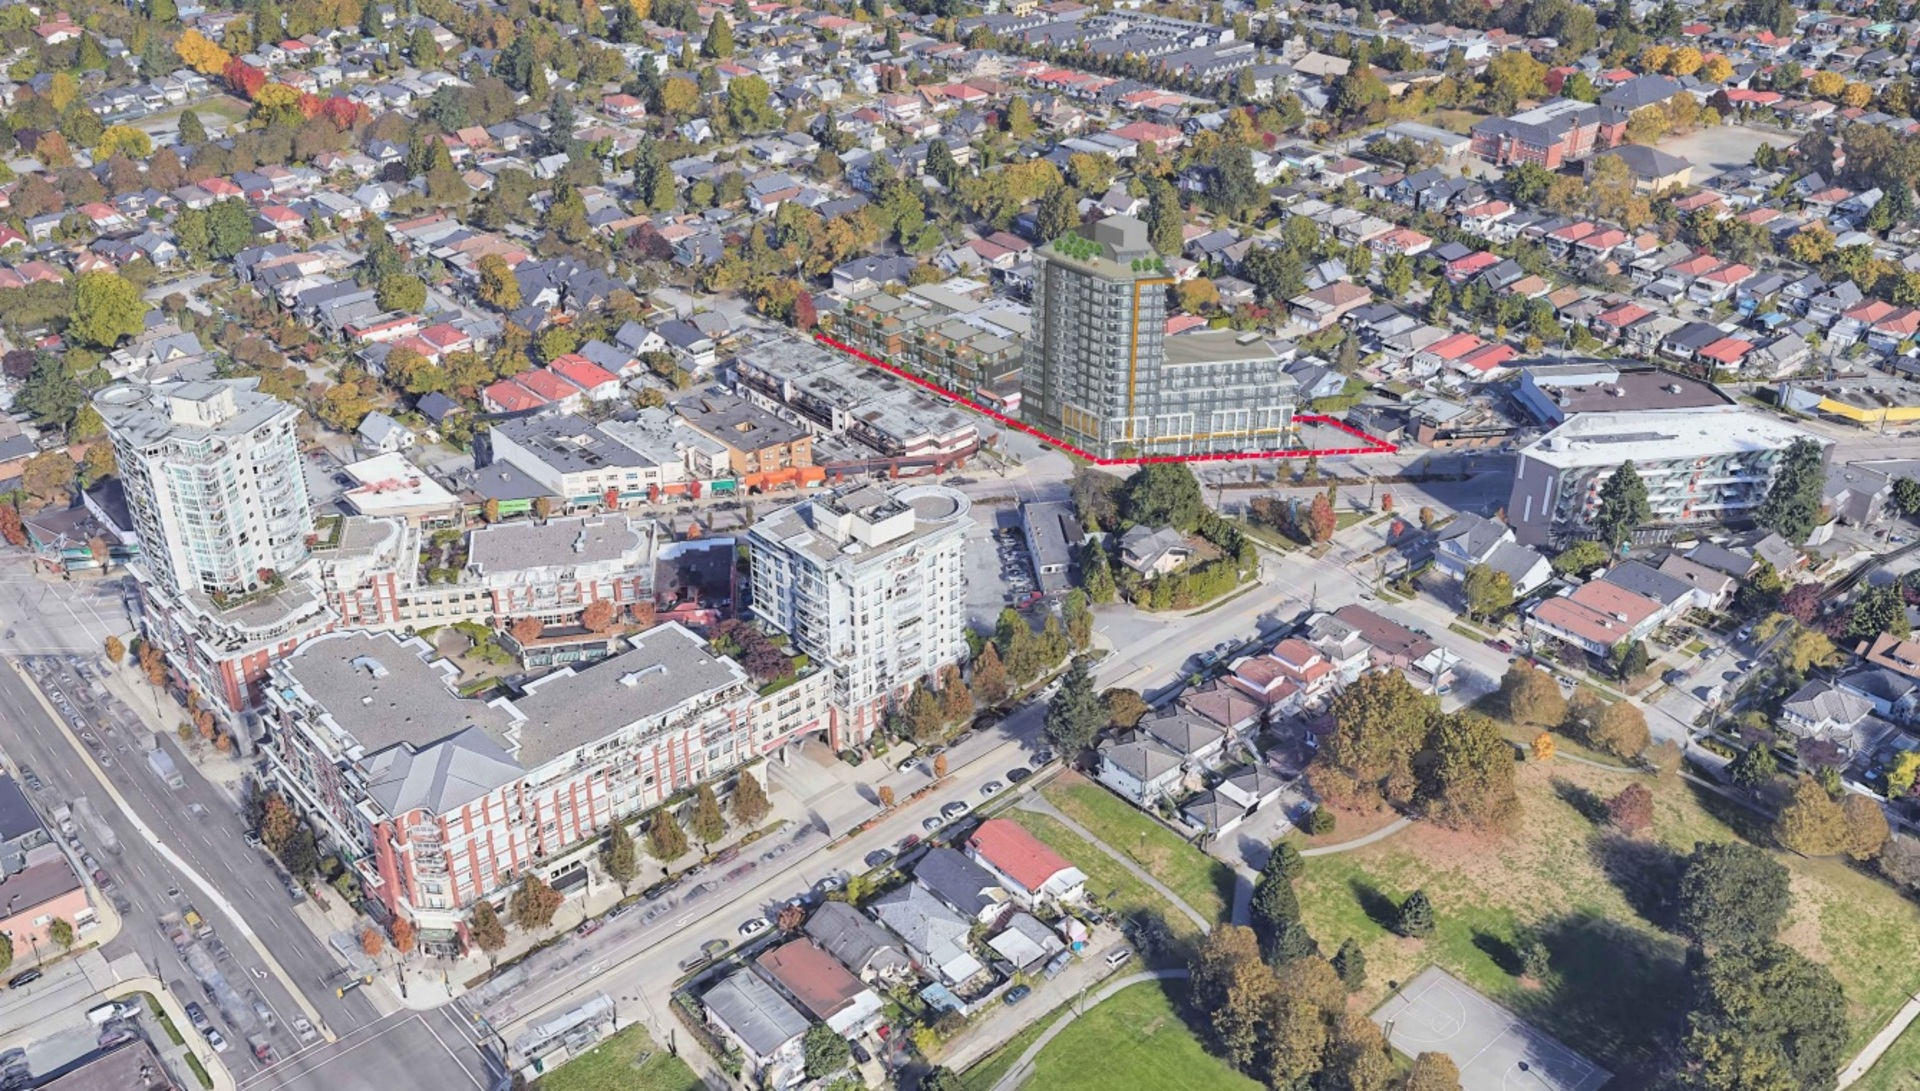 1503-Kinsgway_site -plan-1 at FORMAT (1503 Kingsway Street, Knight, Vancouver East)